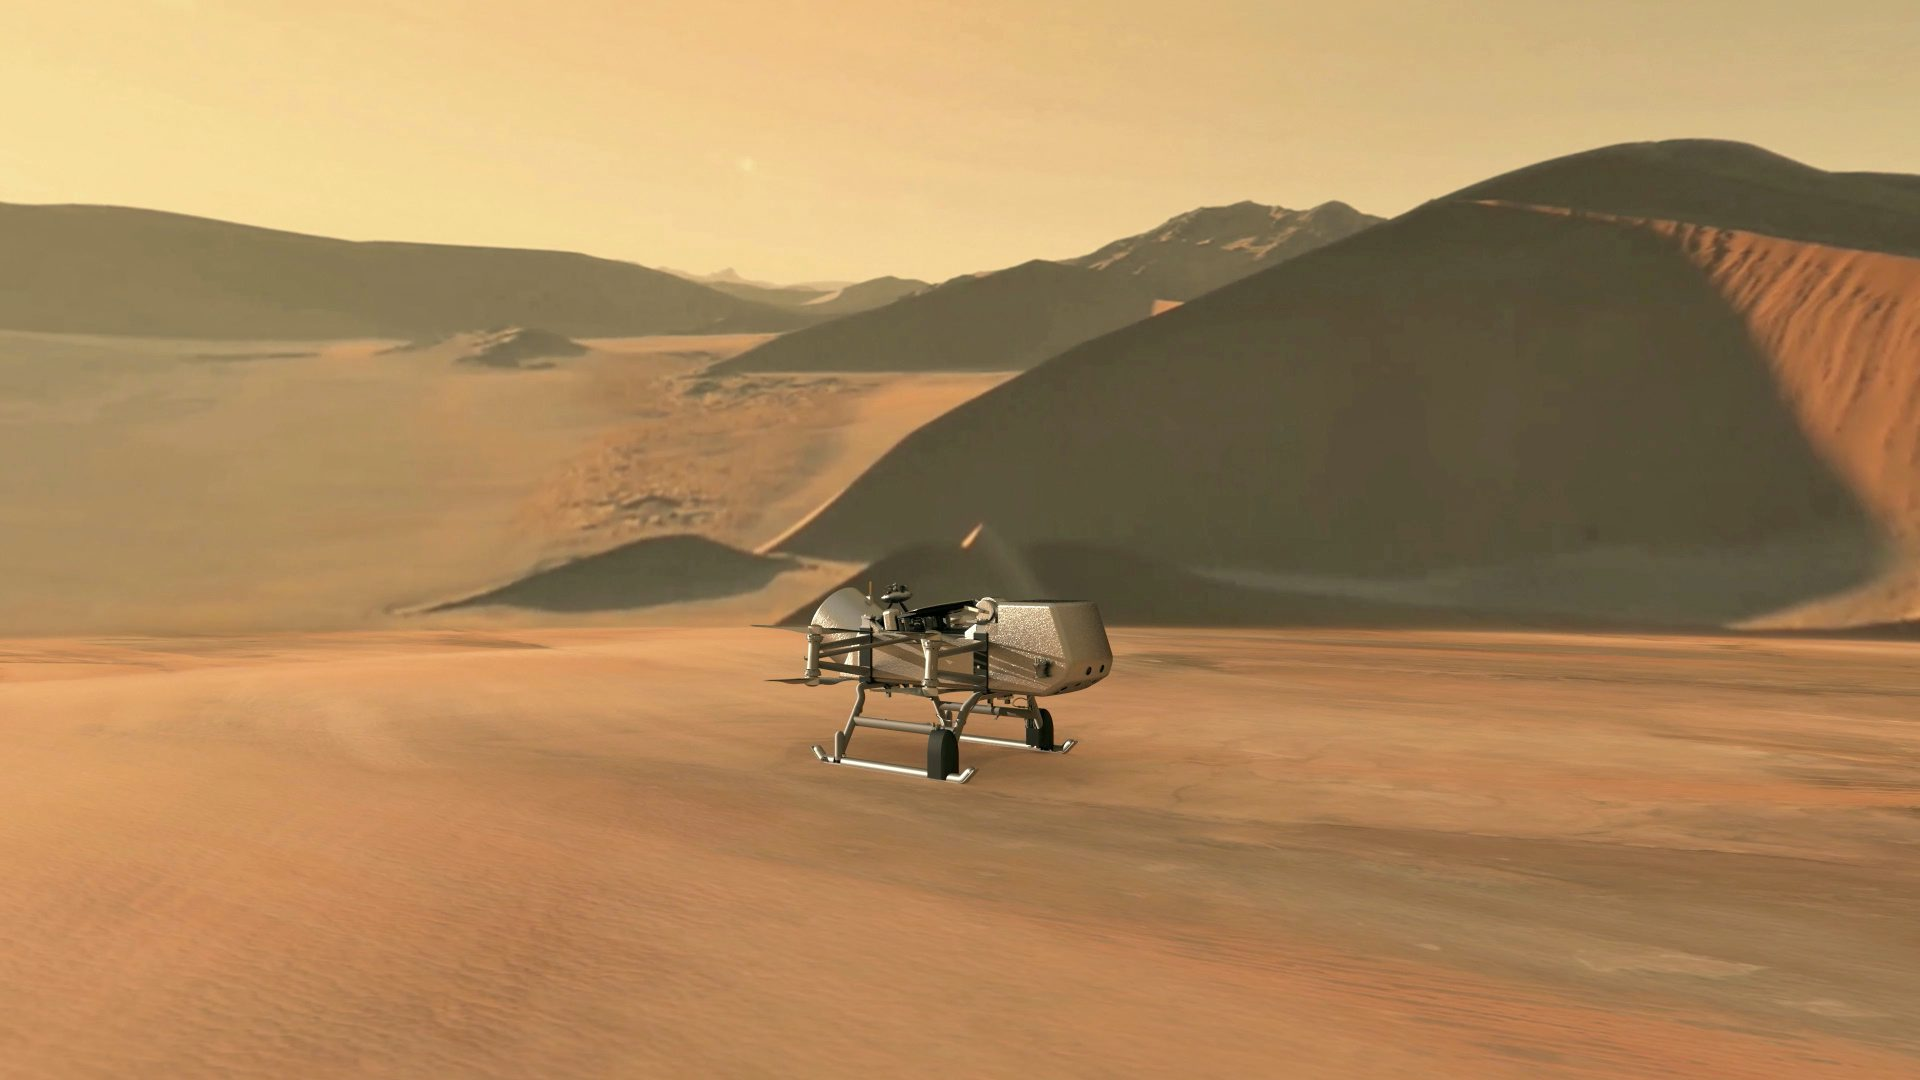 NASA's planned Dragonfly rotorcraft lander approaches a site to explore on Saturn's moon, Titan, in an Illustration released June 27, 2019. NASA/JHU-APL/Handout via REUTERS.  ATTENTION EDITORS - THIS IMAGE HAS BEEN SUPPLIED BY A THIRD PARTY.